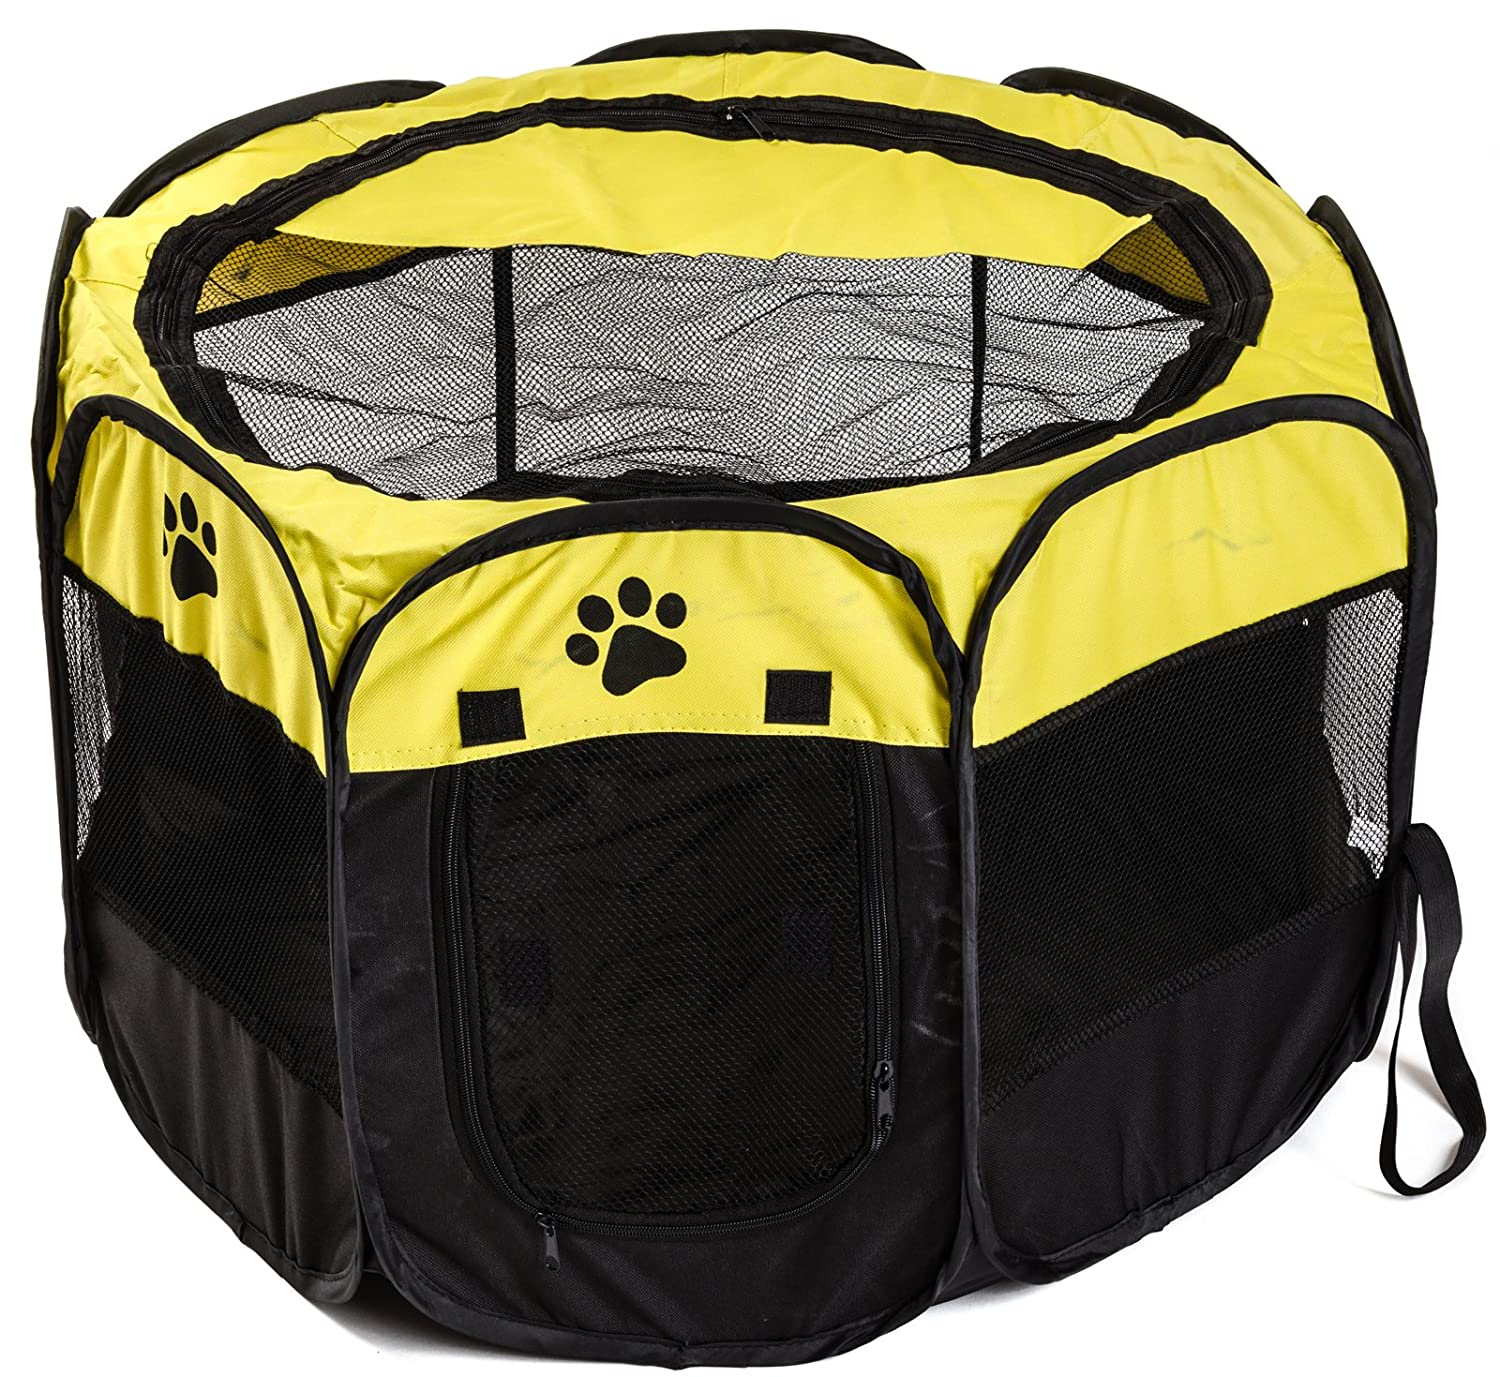 UNIQUE PETZ Lightweight Portable PlayPen See More Sizes